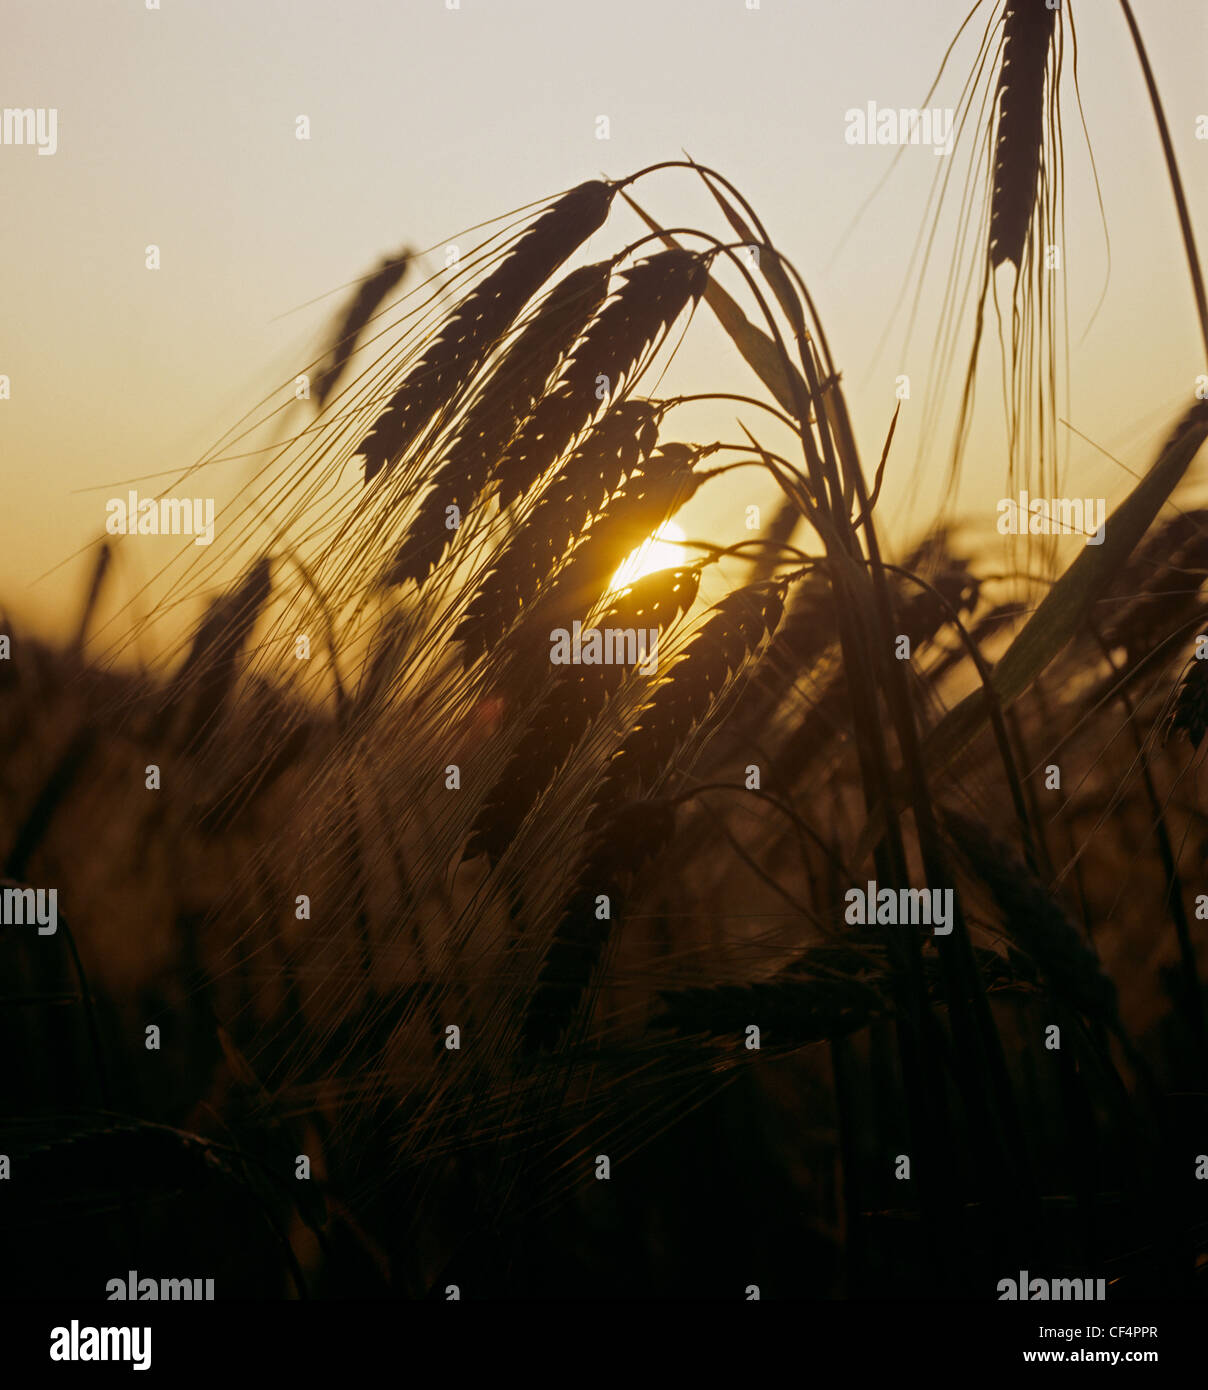 Barley ears against a warm setting summer sun - Stock Image